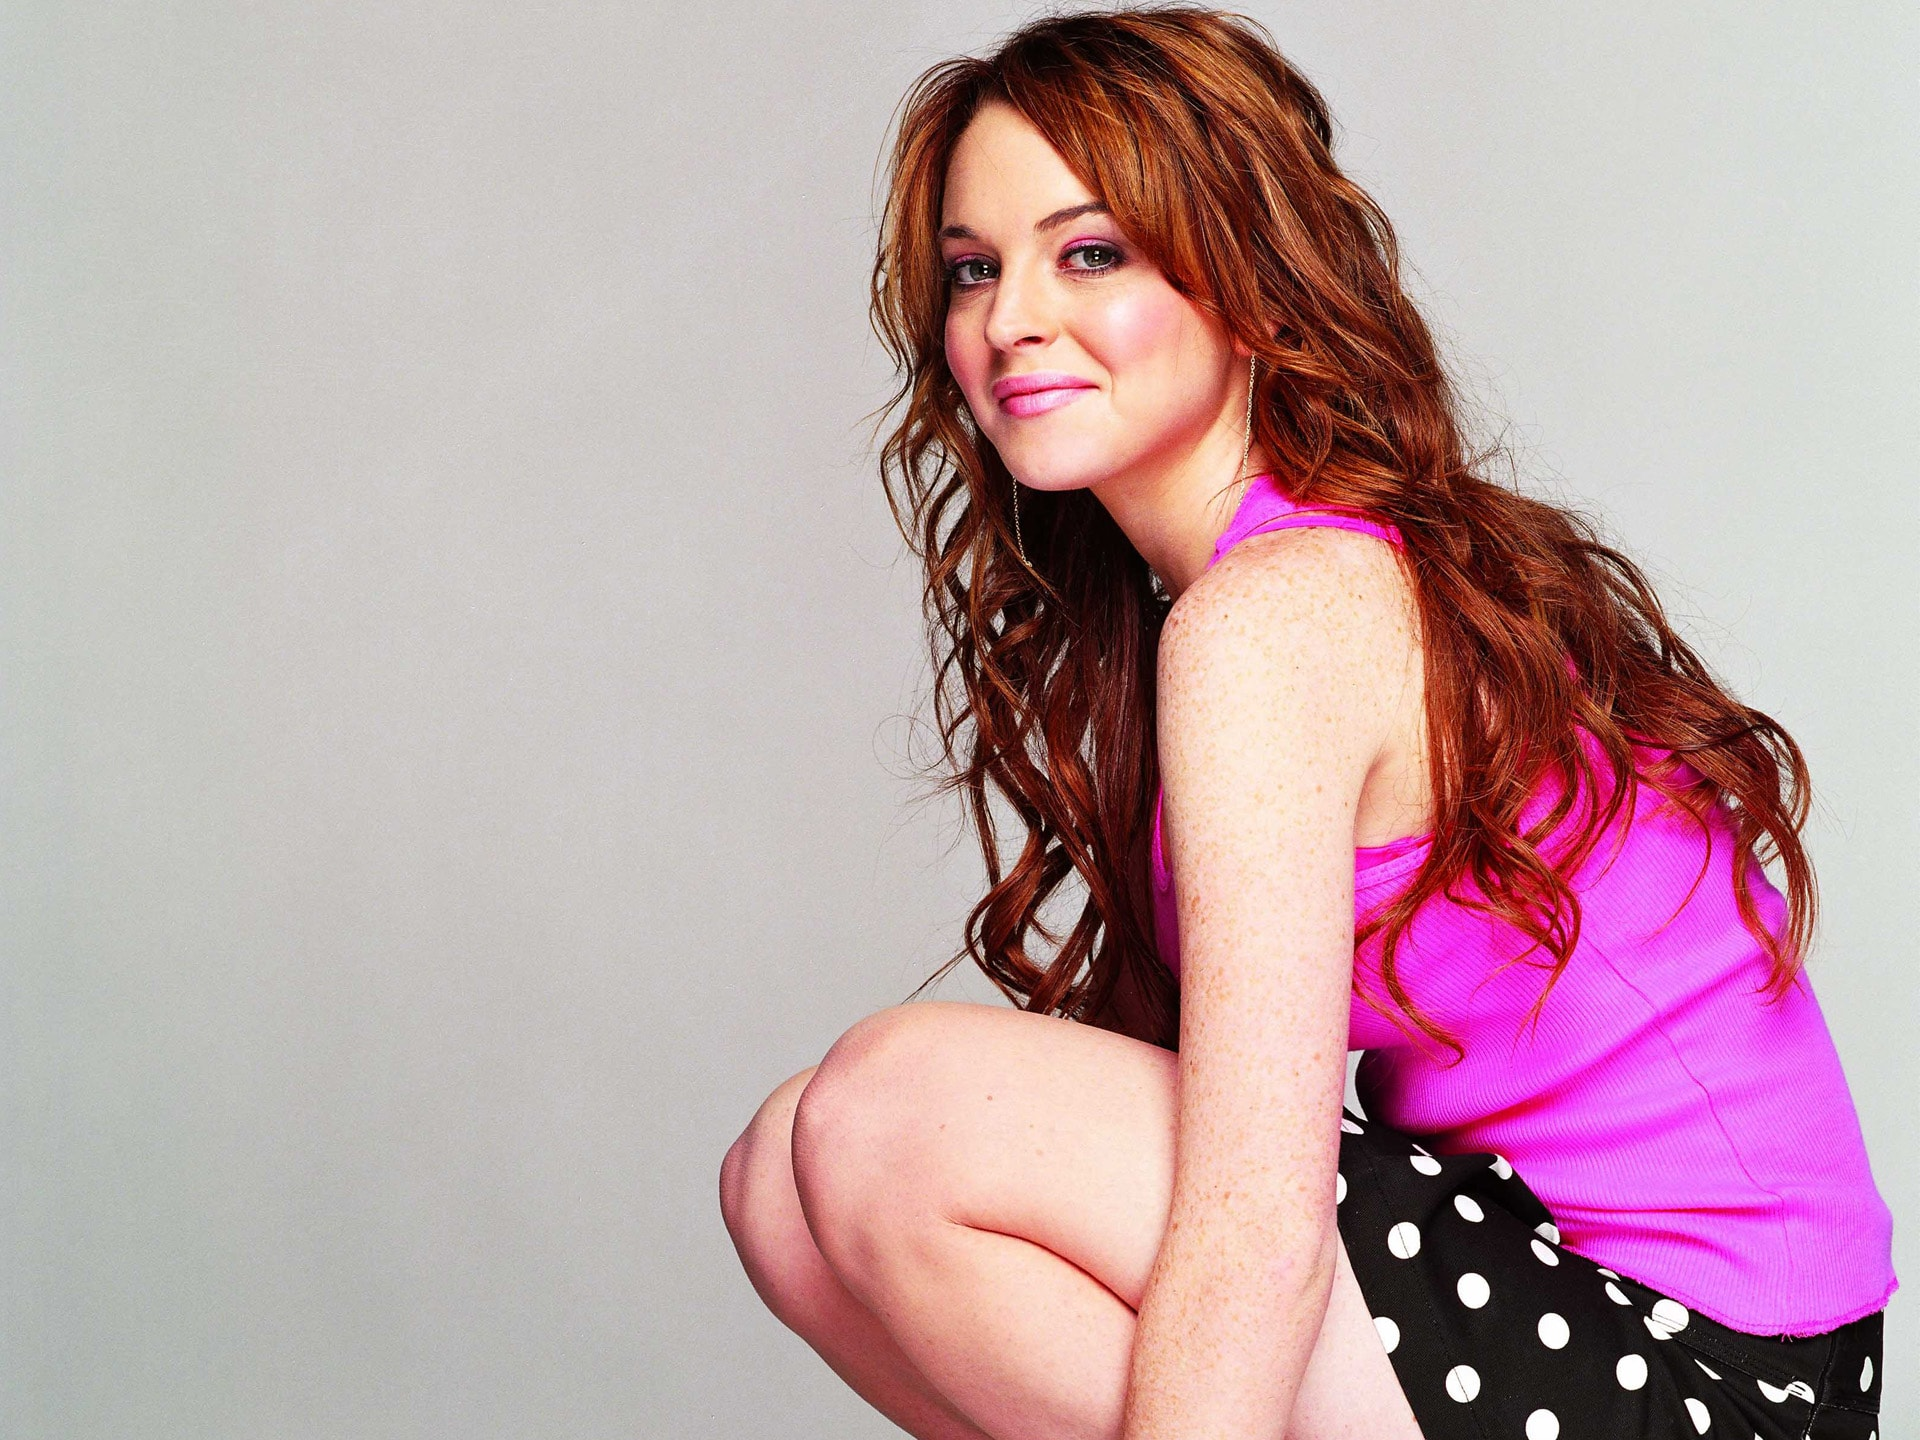 Lindsay Lohan widescreen for desktop